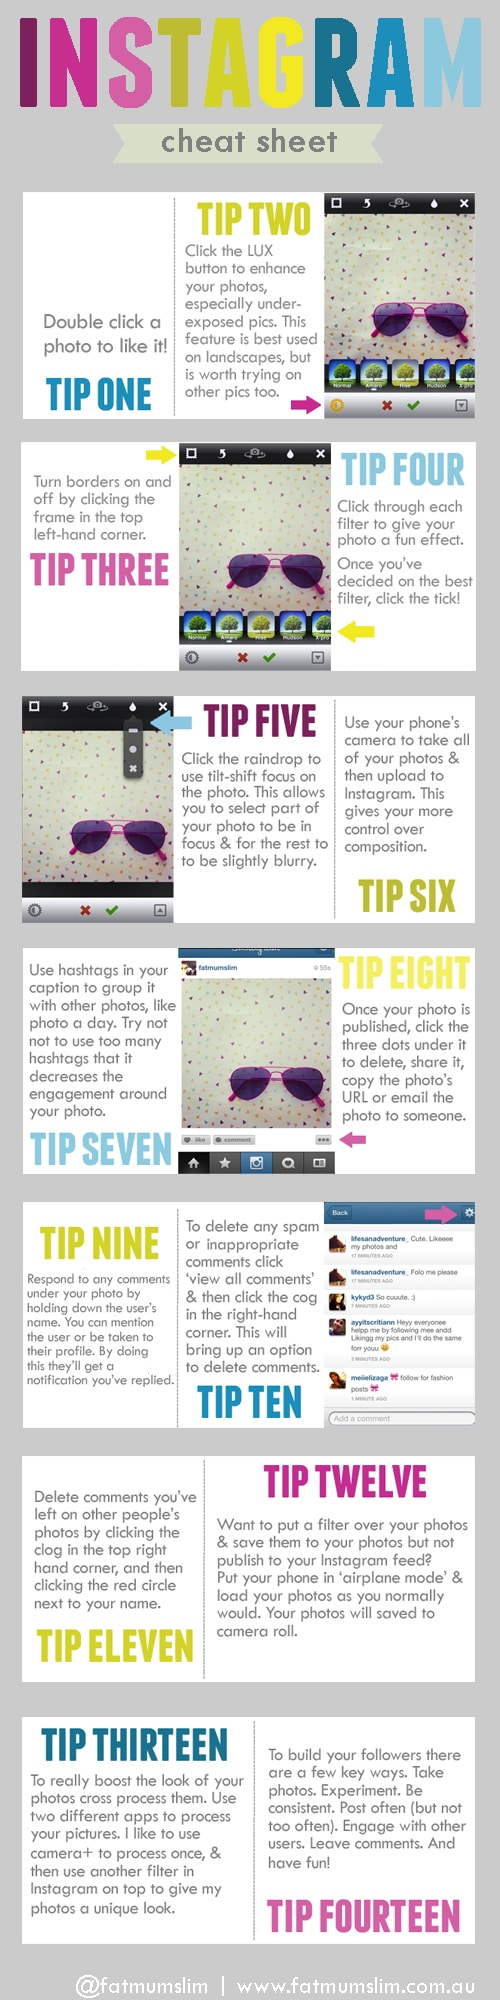 ultimate-instagram-cheat-sheet